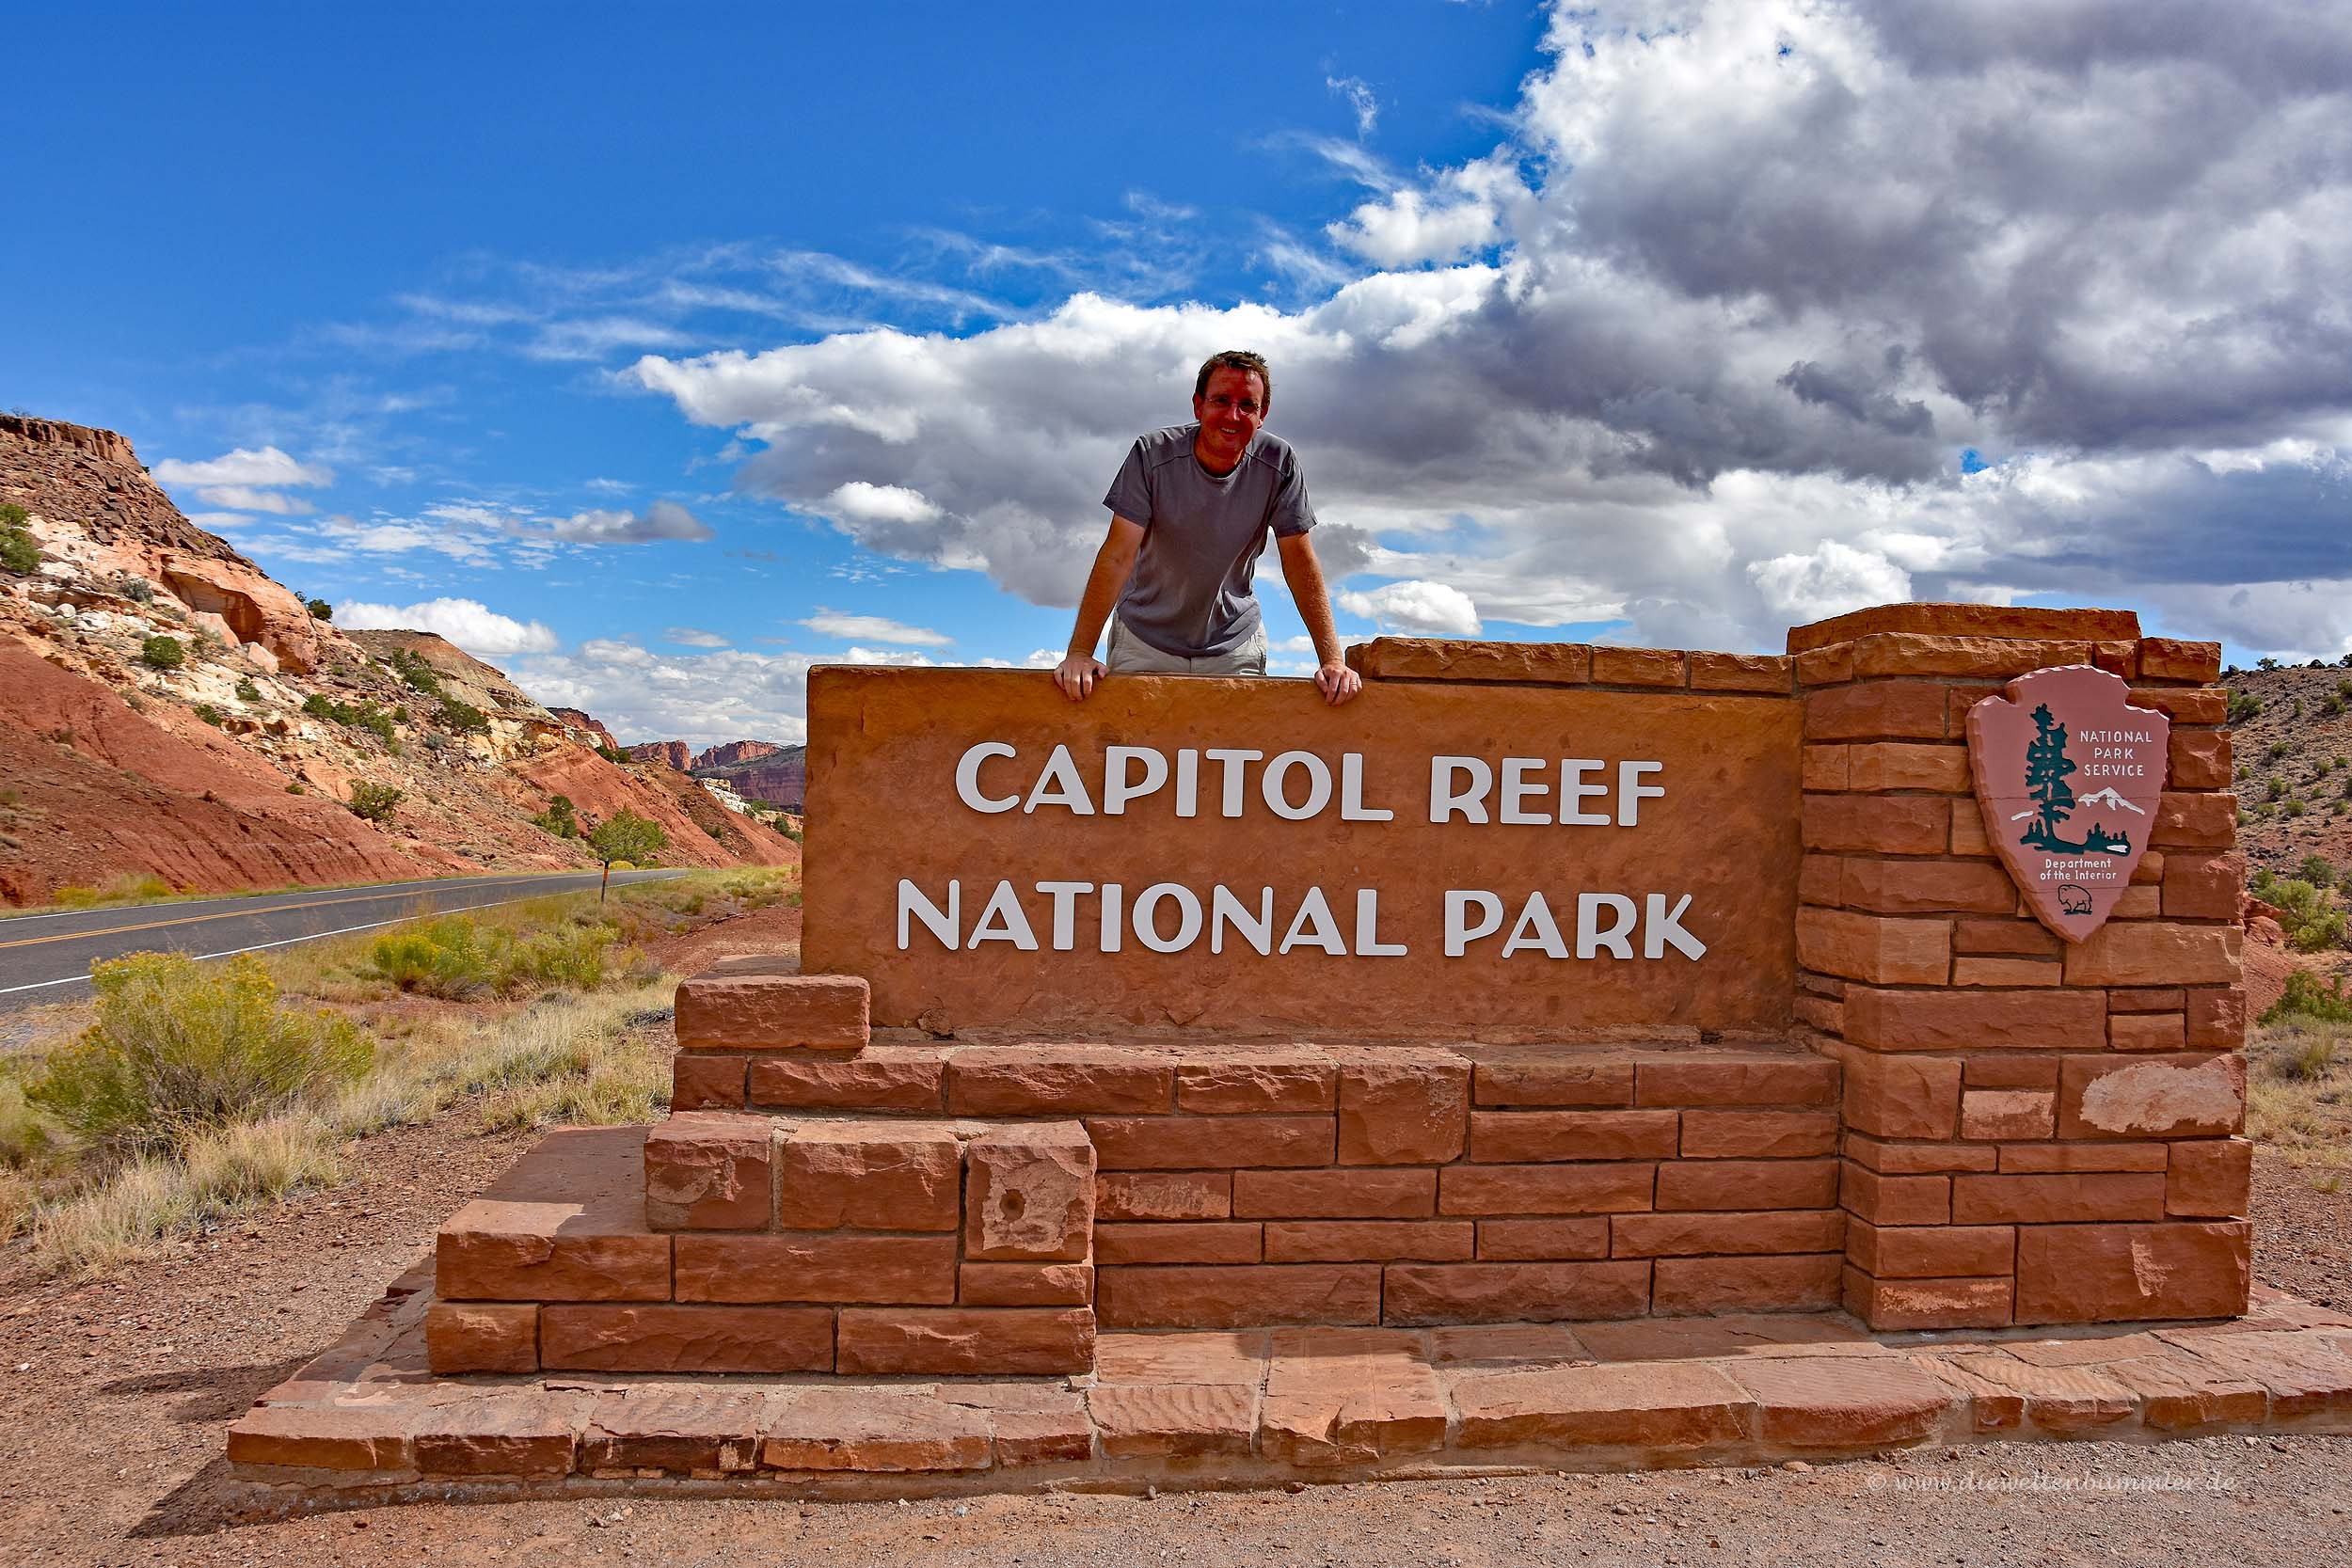 Michael Moll am Capitol Reef